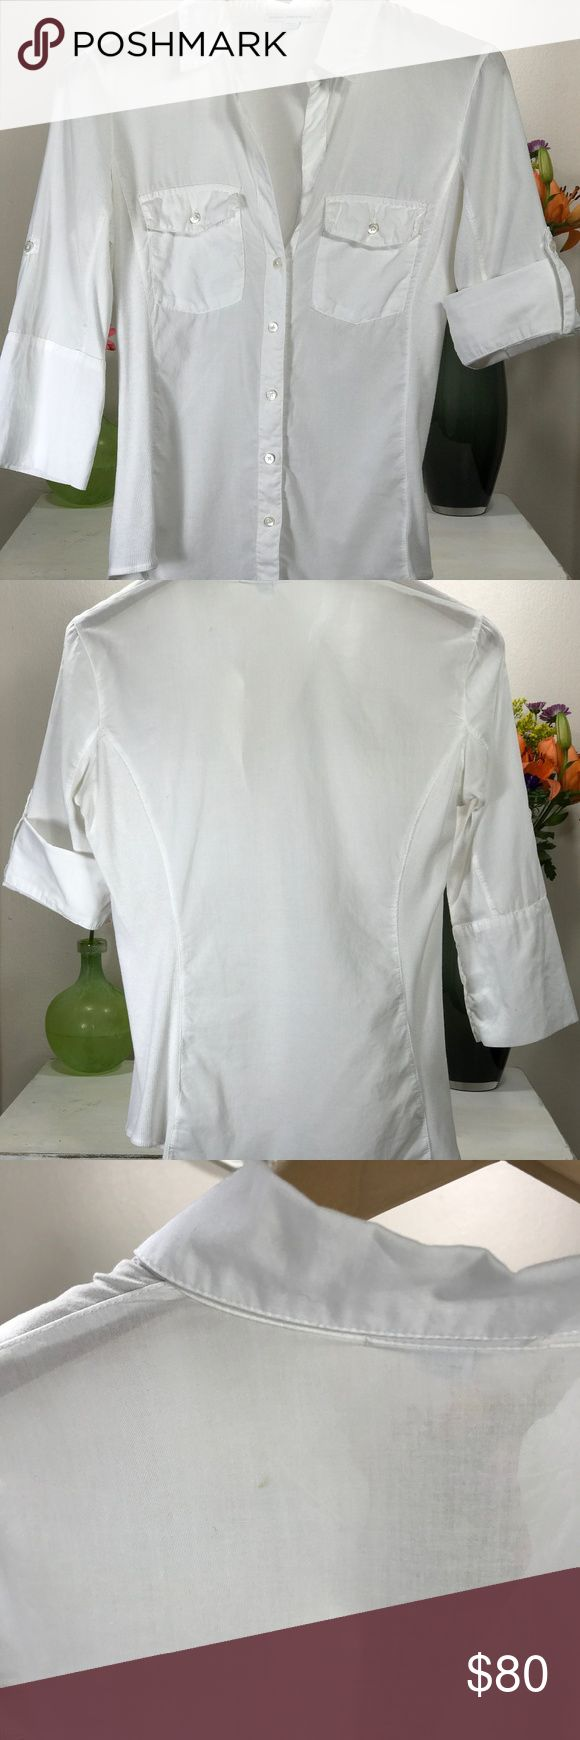 James Perse White Sheer Slub Side Panel Shirt Sz 1 Barely Worn.  Button down with side and sleeve ribbed panels. Folded sleeve cuffs with button closures. Two front flap pockets with button closures. Slightly curved bottom hem.   Still available new at James Perse Here - $155 : http://www.jamesperse.com/womens-sheer-slub-side-panel-shirt-wua3042 James Perse Tops Button Down Shirts